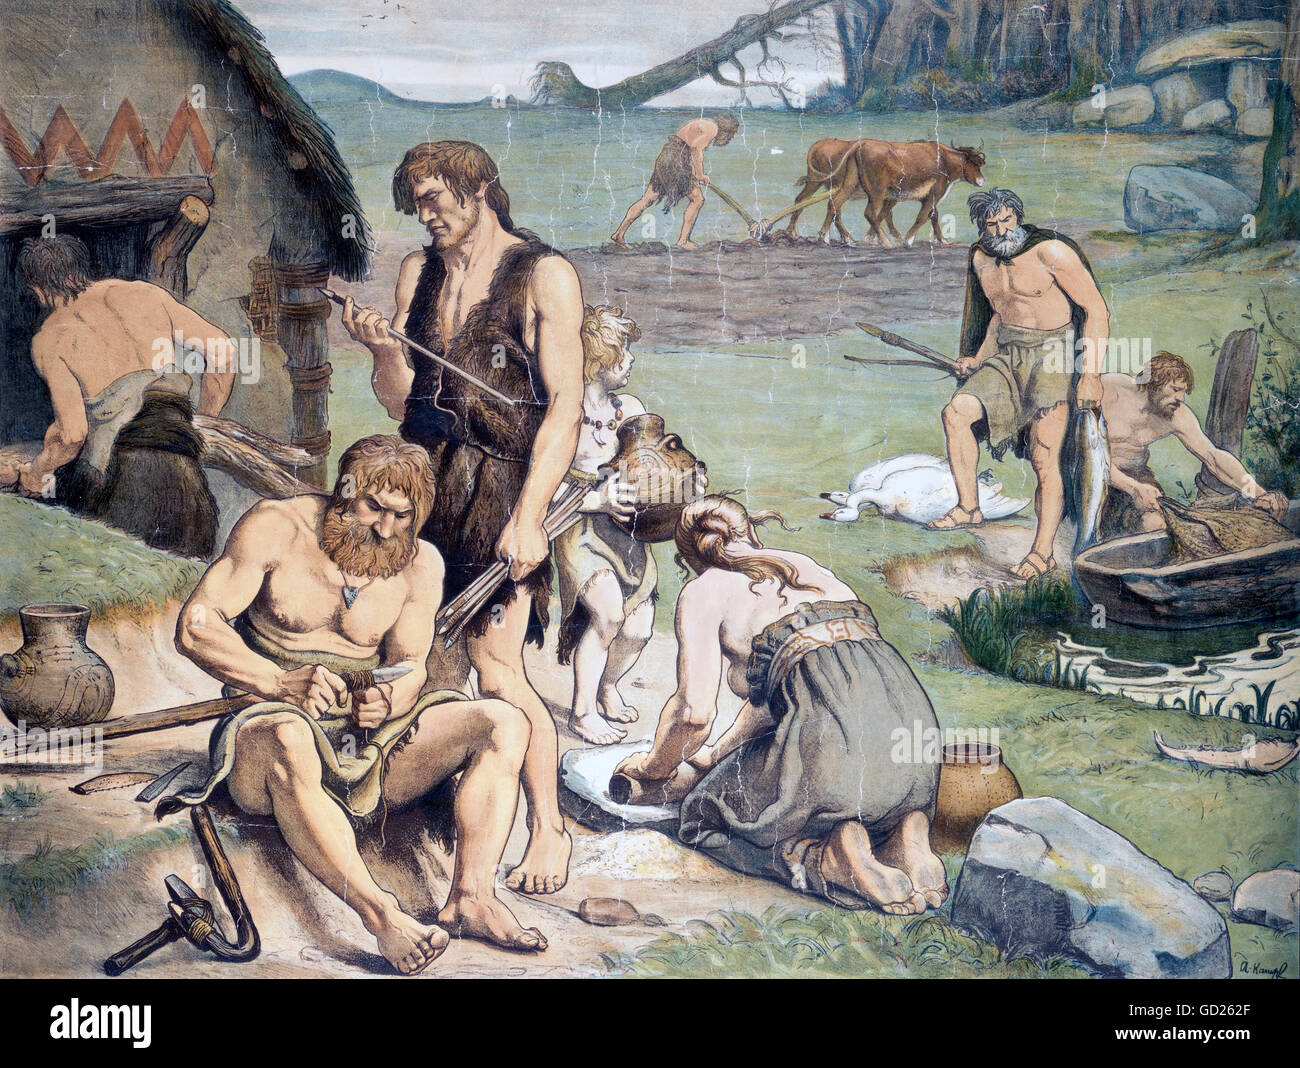 prehistory, people/prehistoric men, settlement in the neolithic, young stone age, after painting by Arthur Kampf, - Stock Image